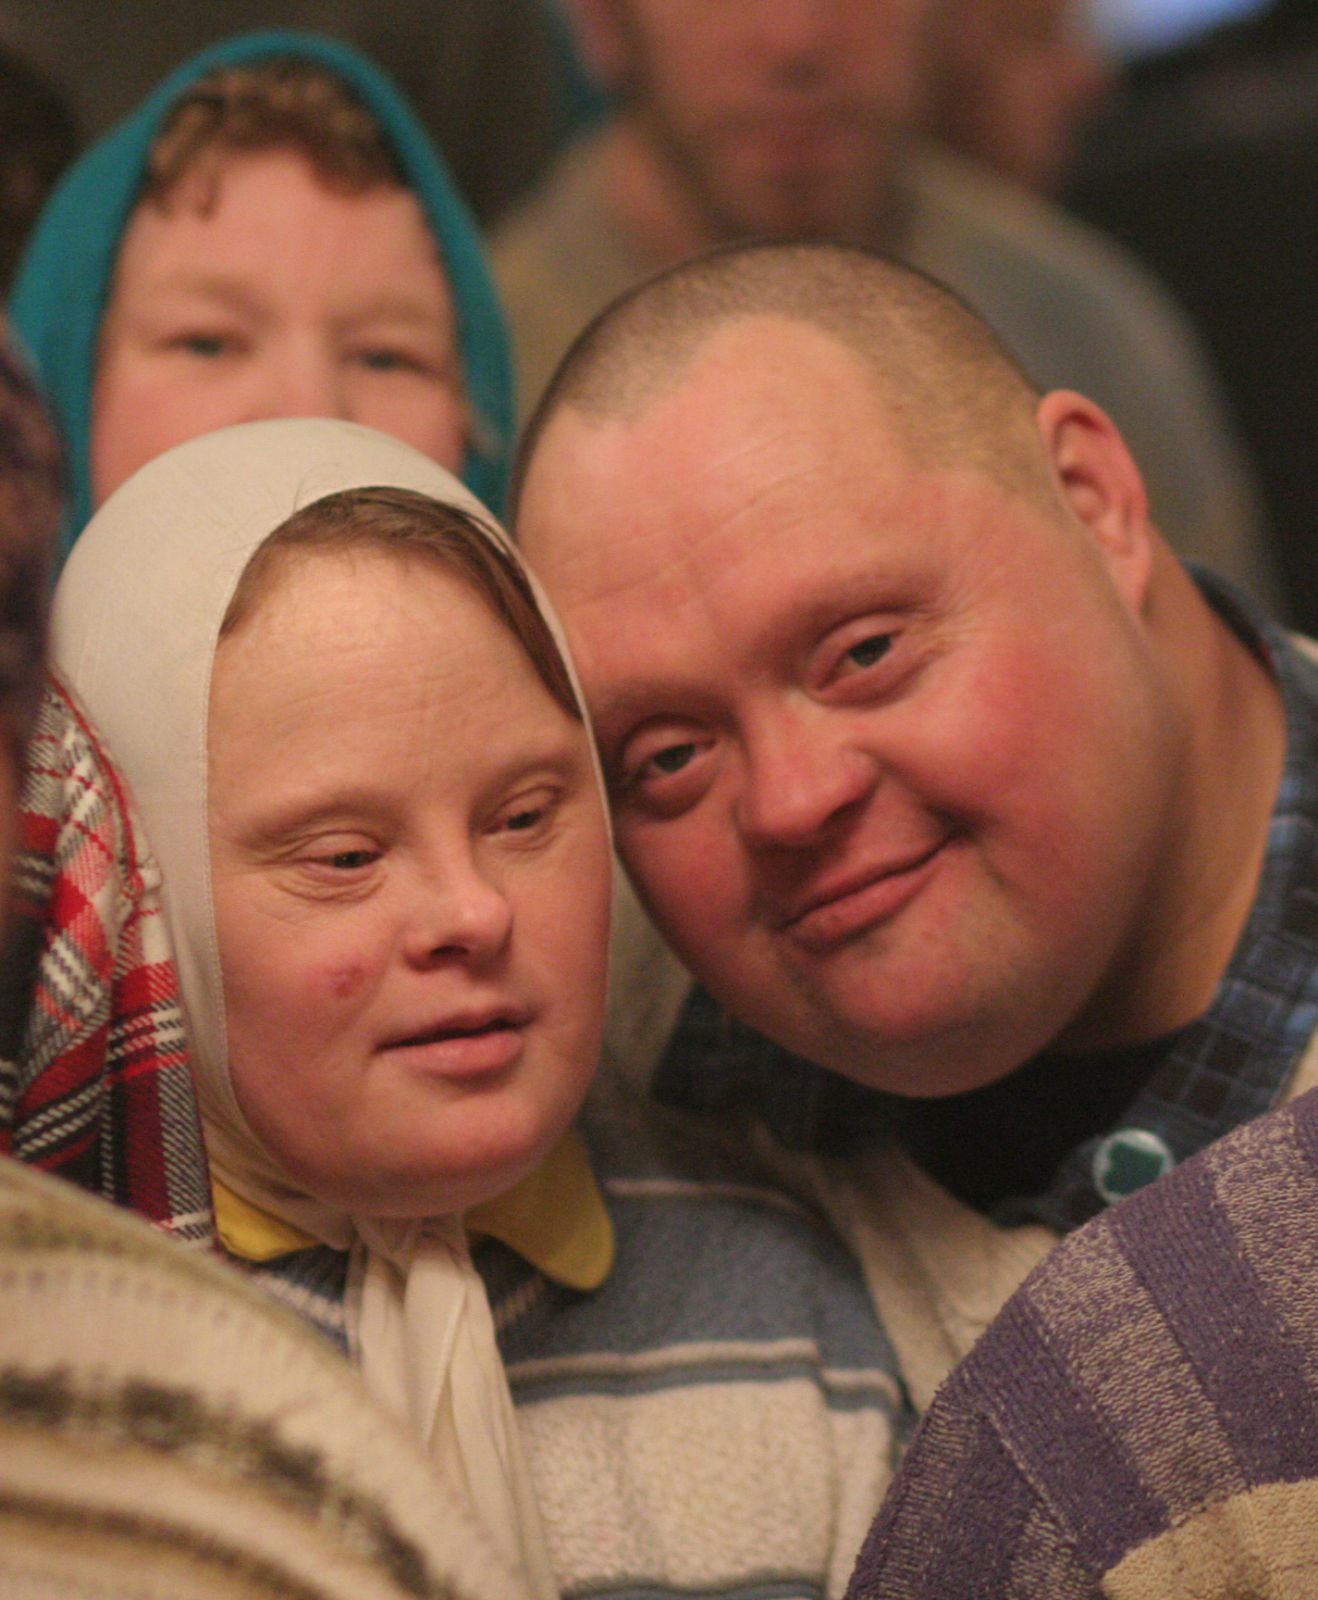 man and woman with Down syndrome